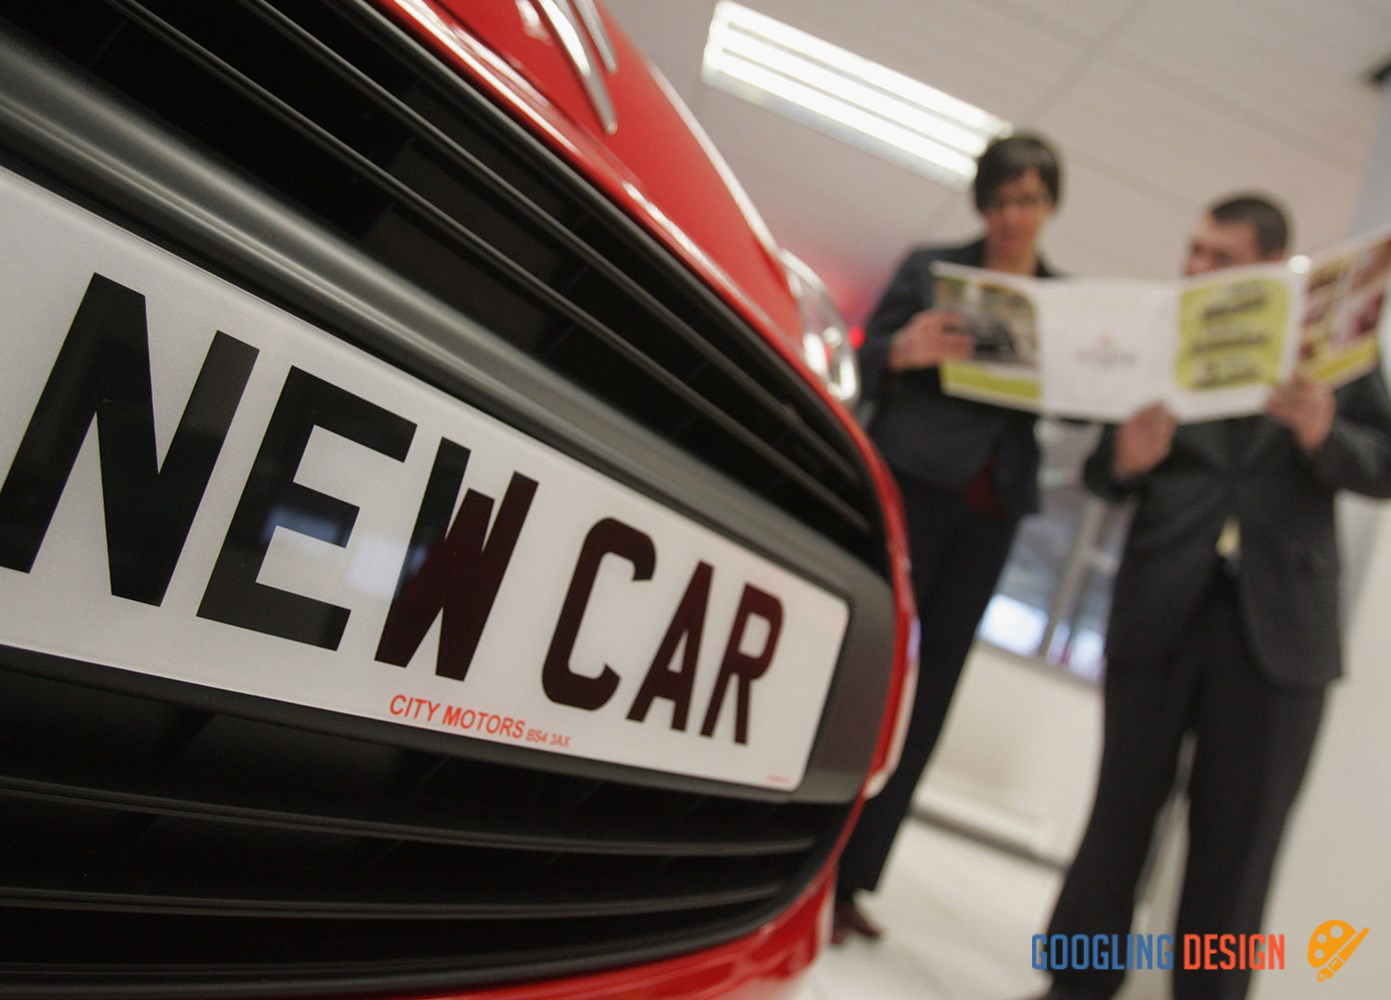 Even odd numbers trigger an increase in car sales?